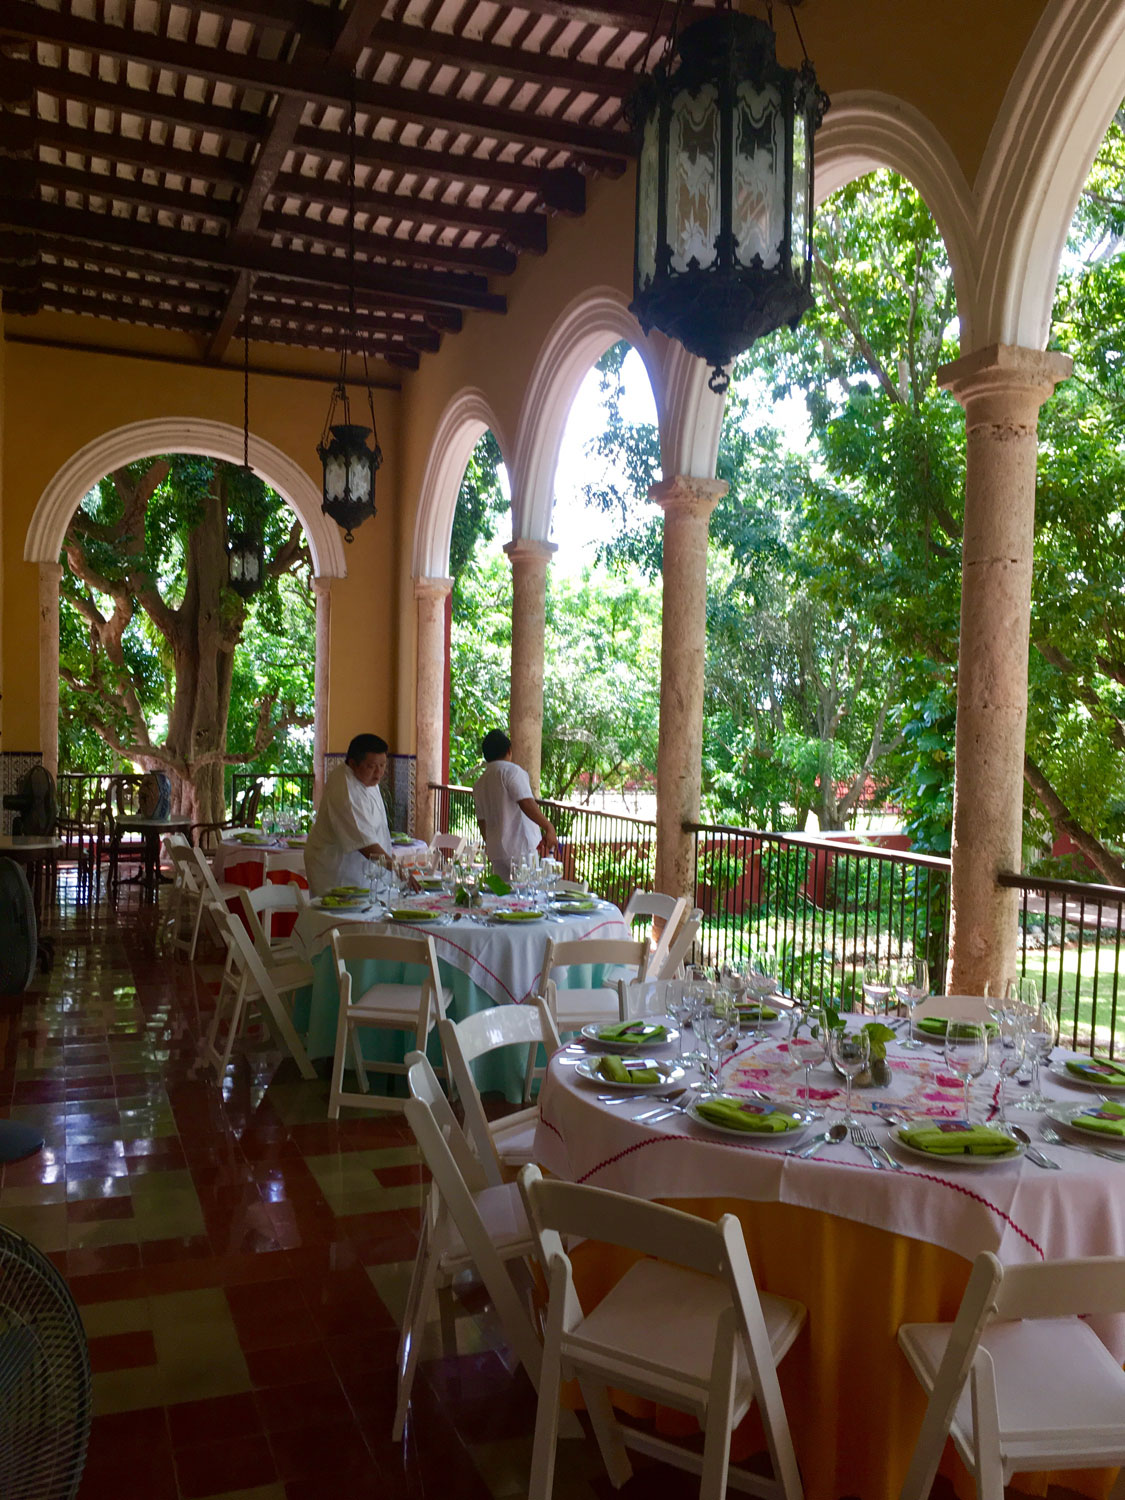 The main house can be booked for private events.